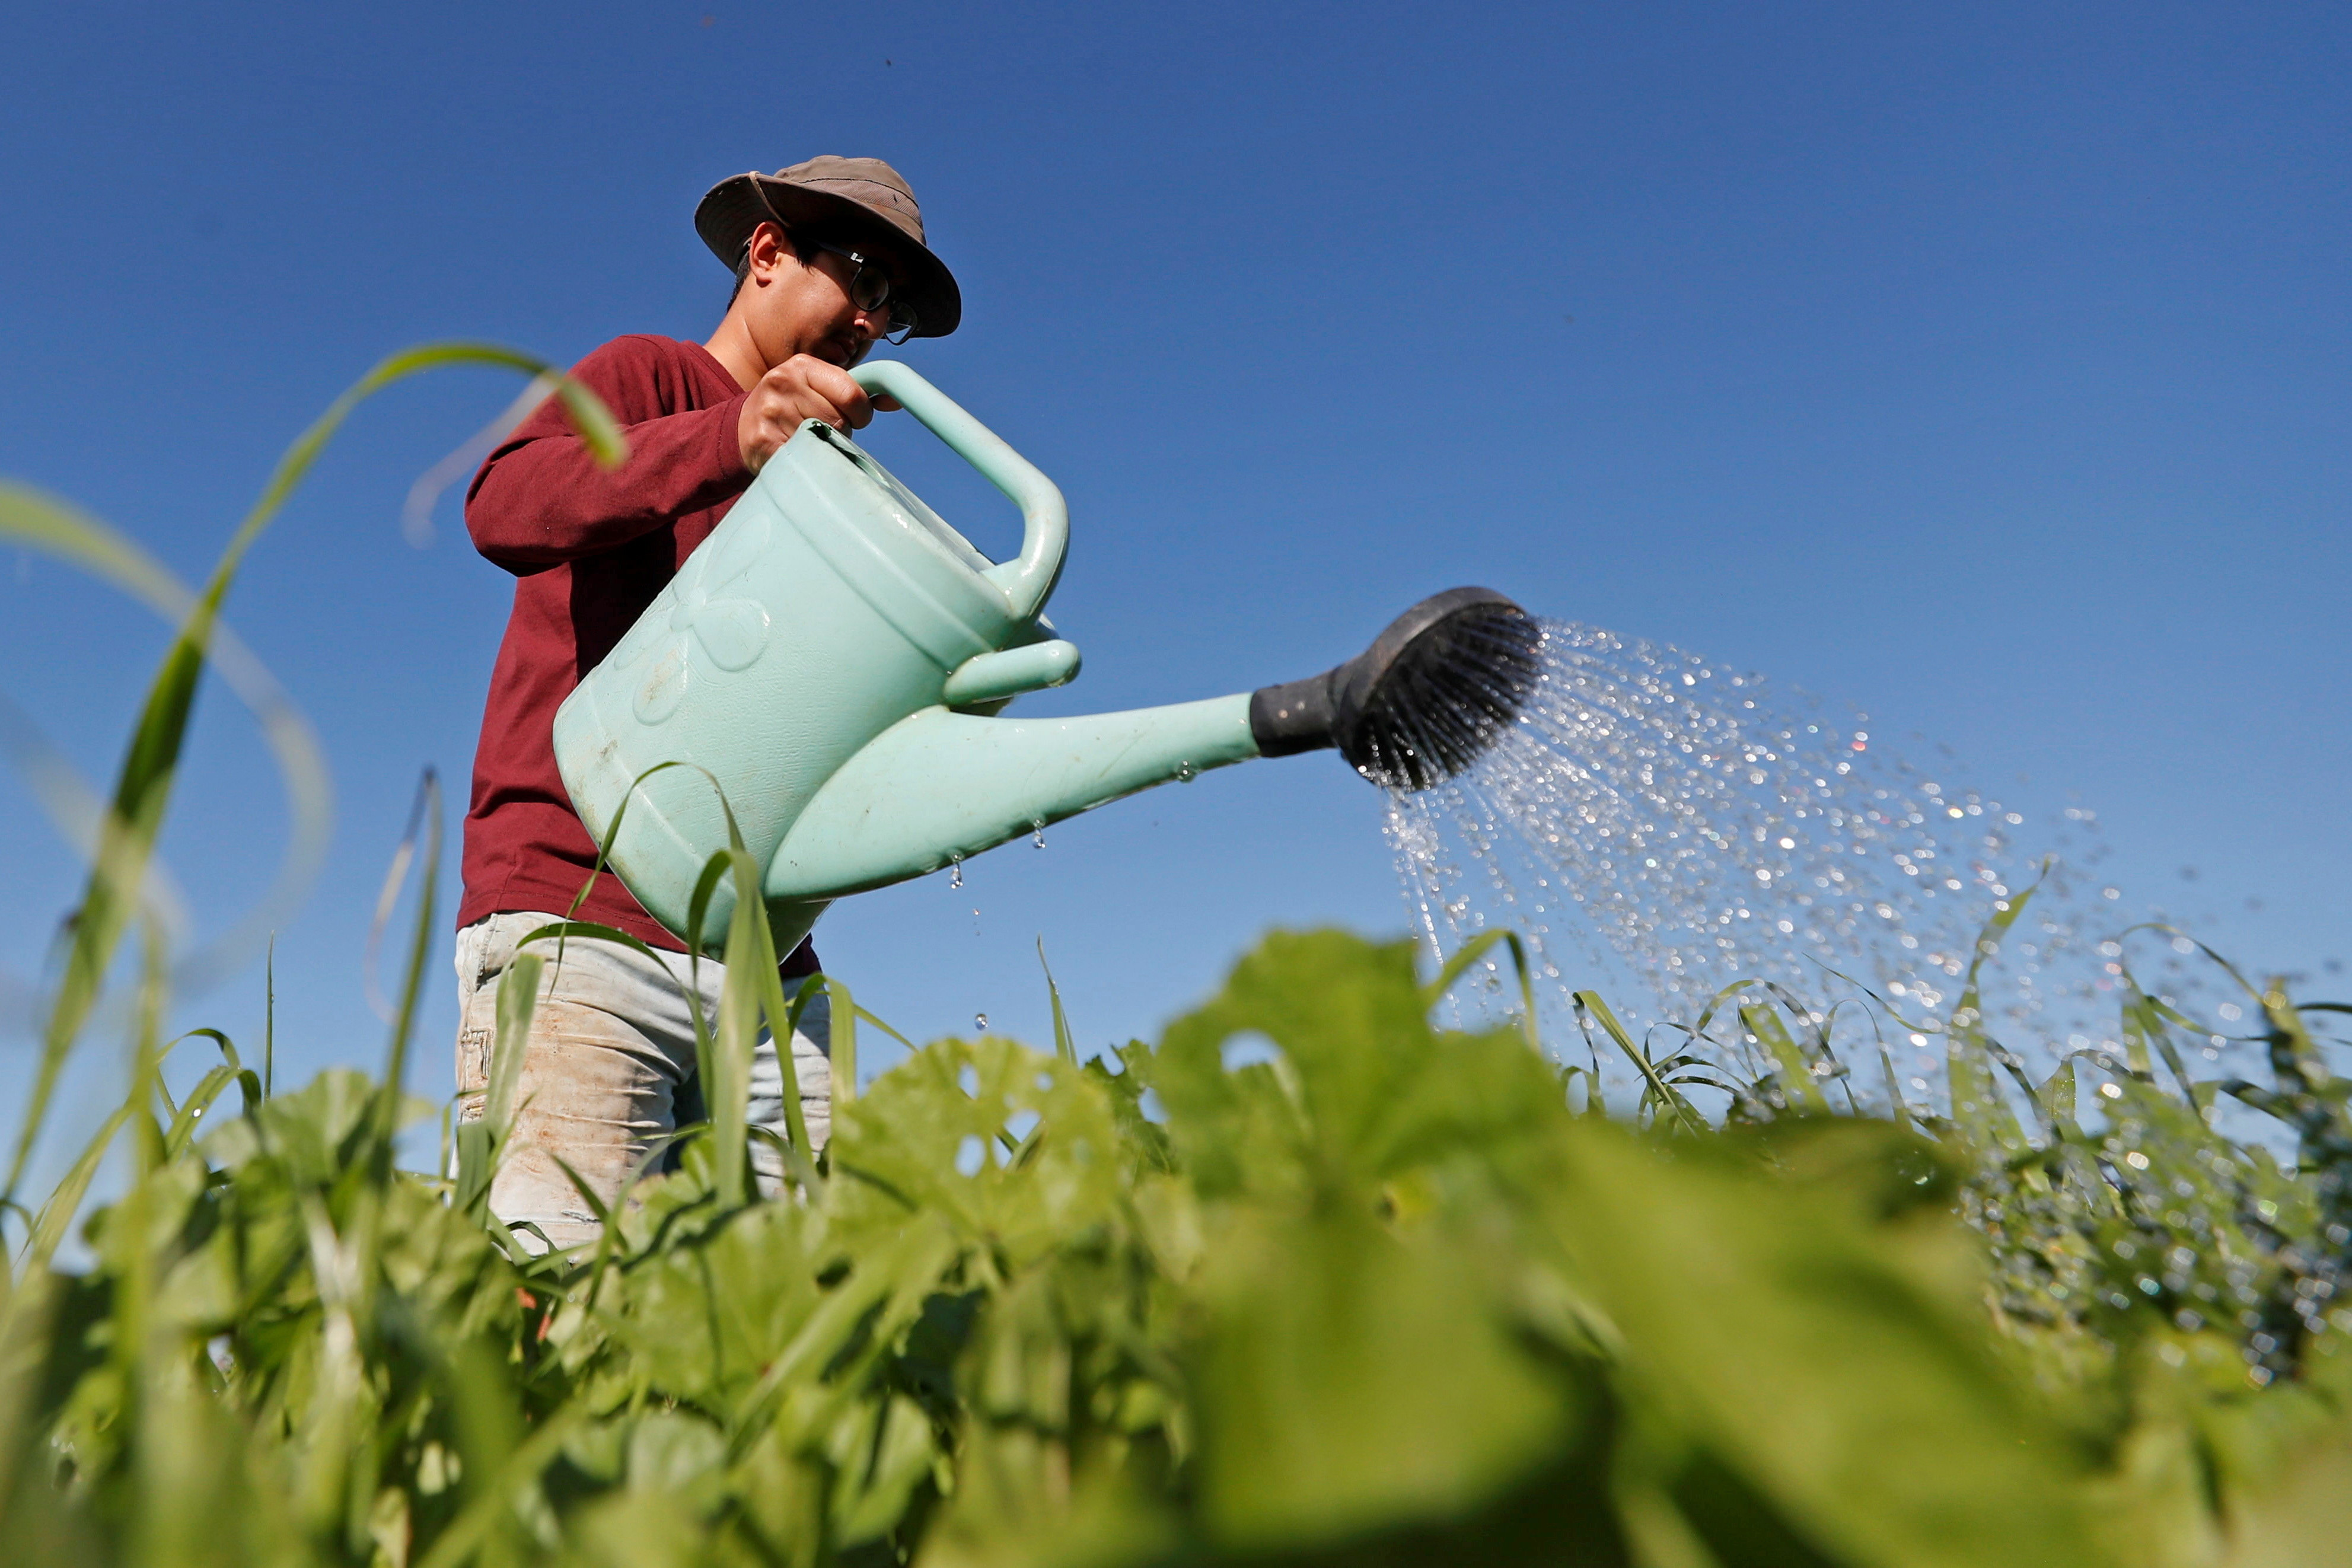 A man waters plants at a Community Supported Agriculture (CSA) farm that produces organic vegetables and fruits, in the village of Bilin in the Israeli-occupied West Bank December 19, 2020. Picture taken December 19, 2020. REUTERS/Mohamad Torokman - RC2NTK9DP8WD